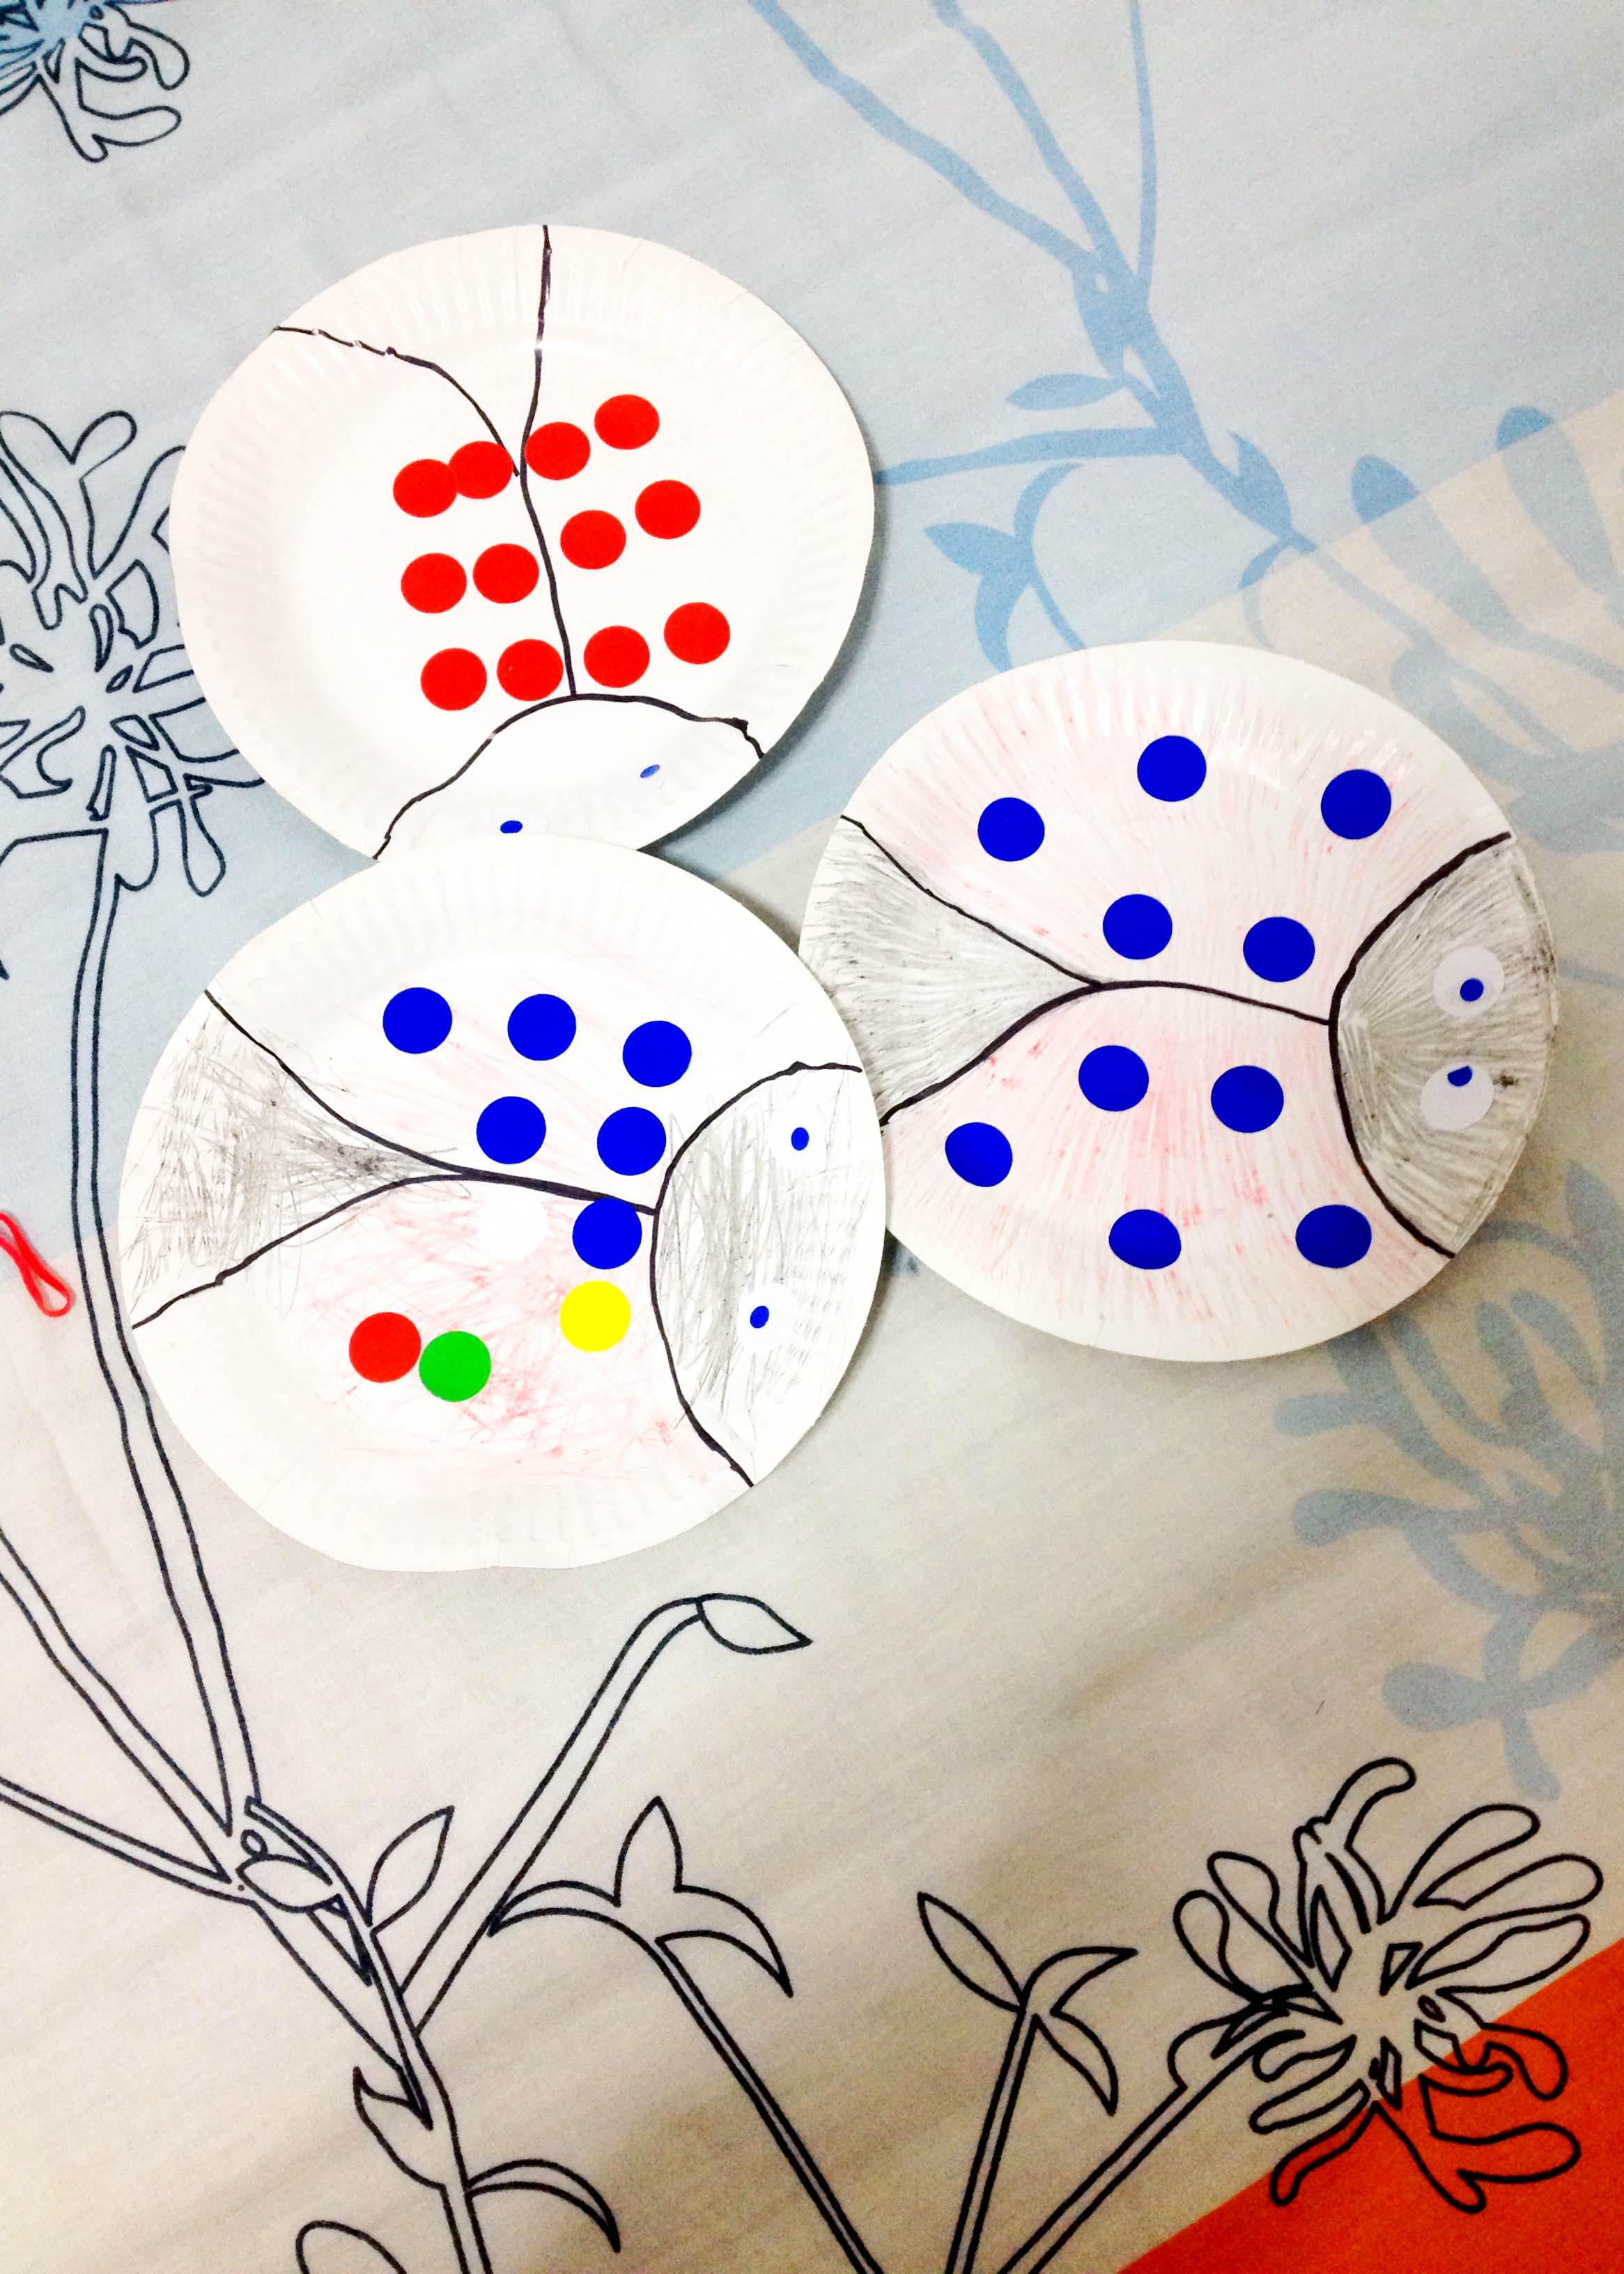 Insects paper plate crafts with stickers, fun!